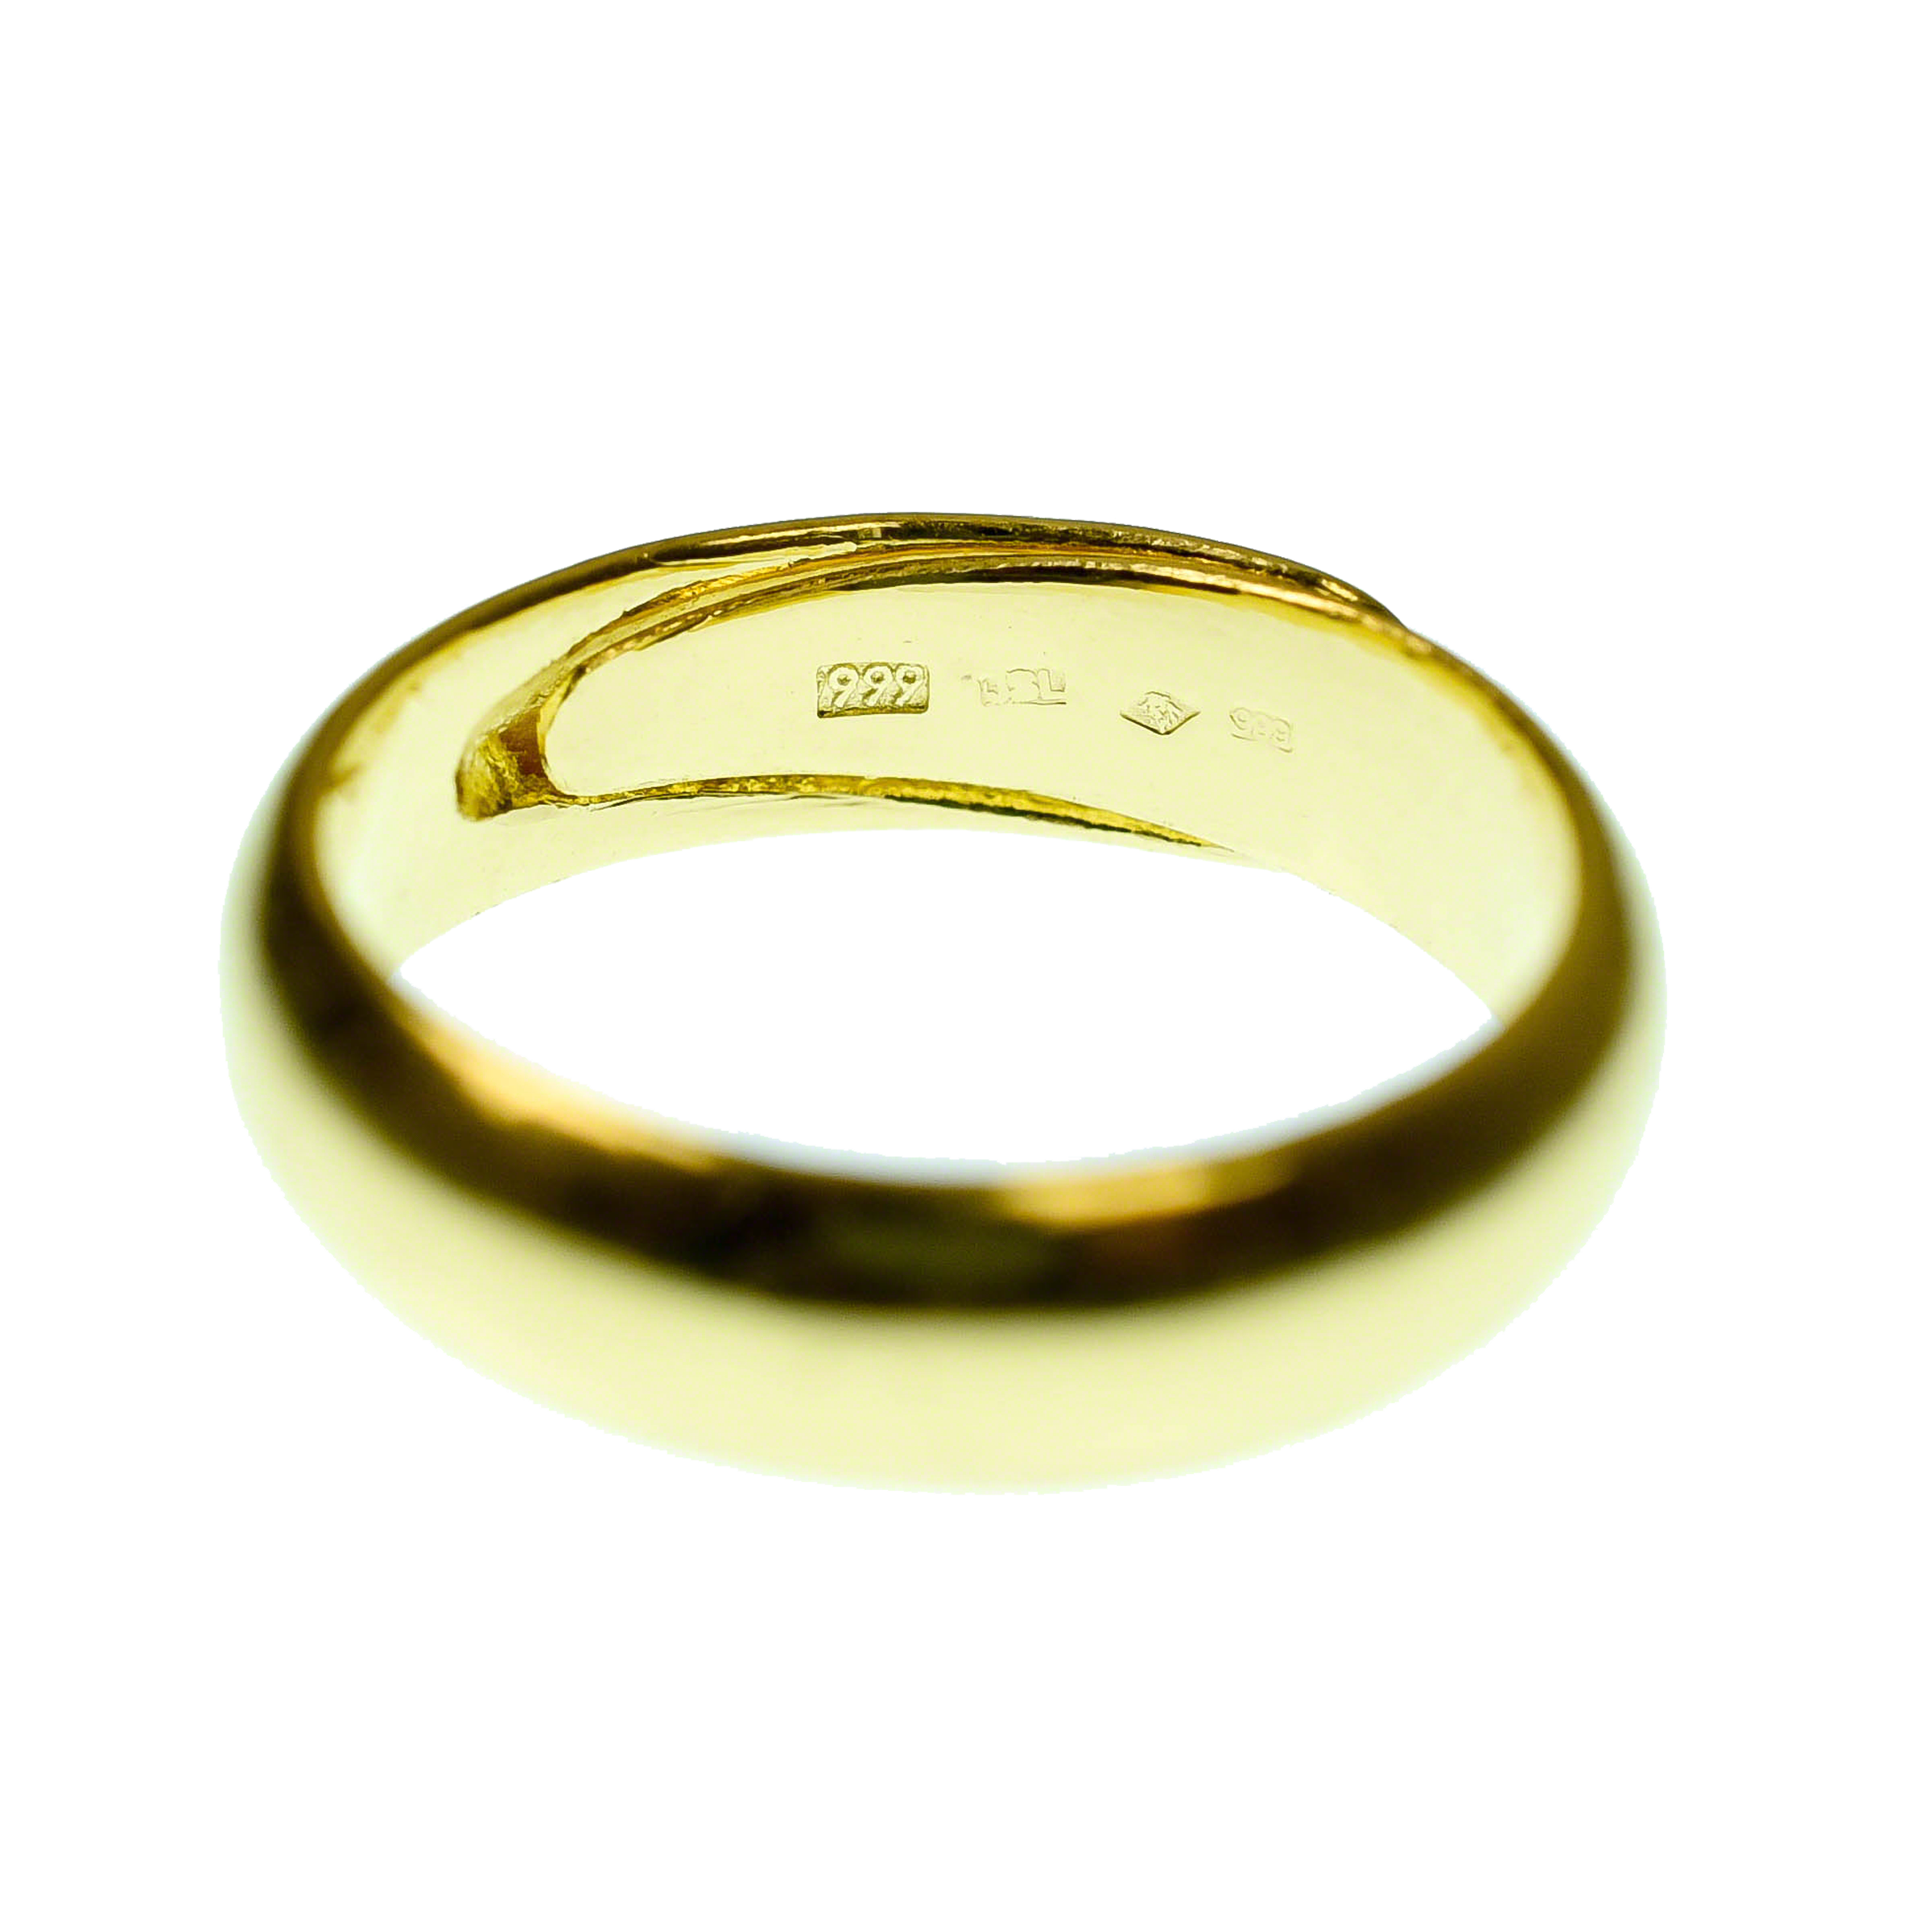 jewellers candere jewellery ring a india online kalyan womens com shopping company gold jayden rings yellow